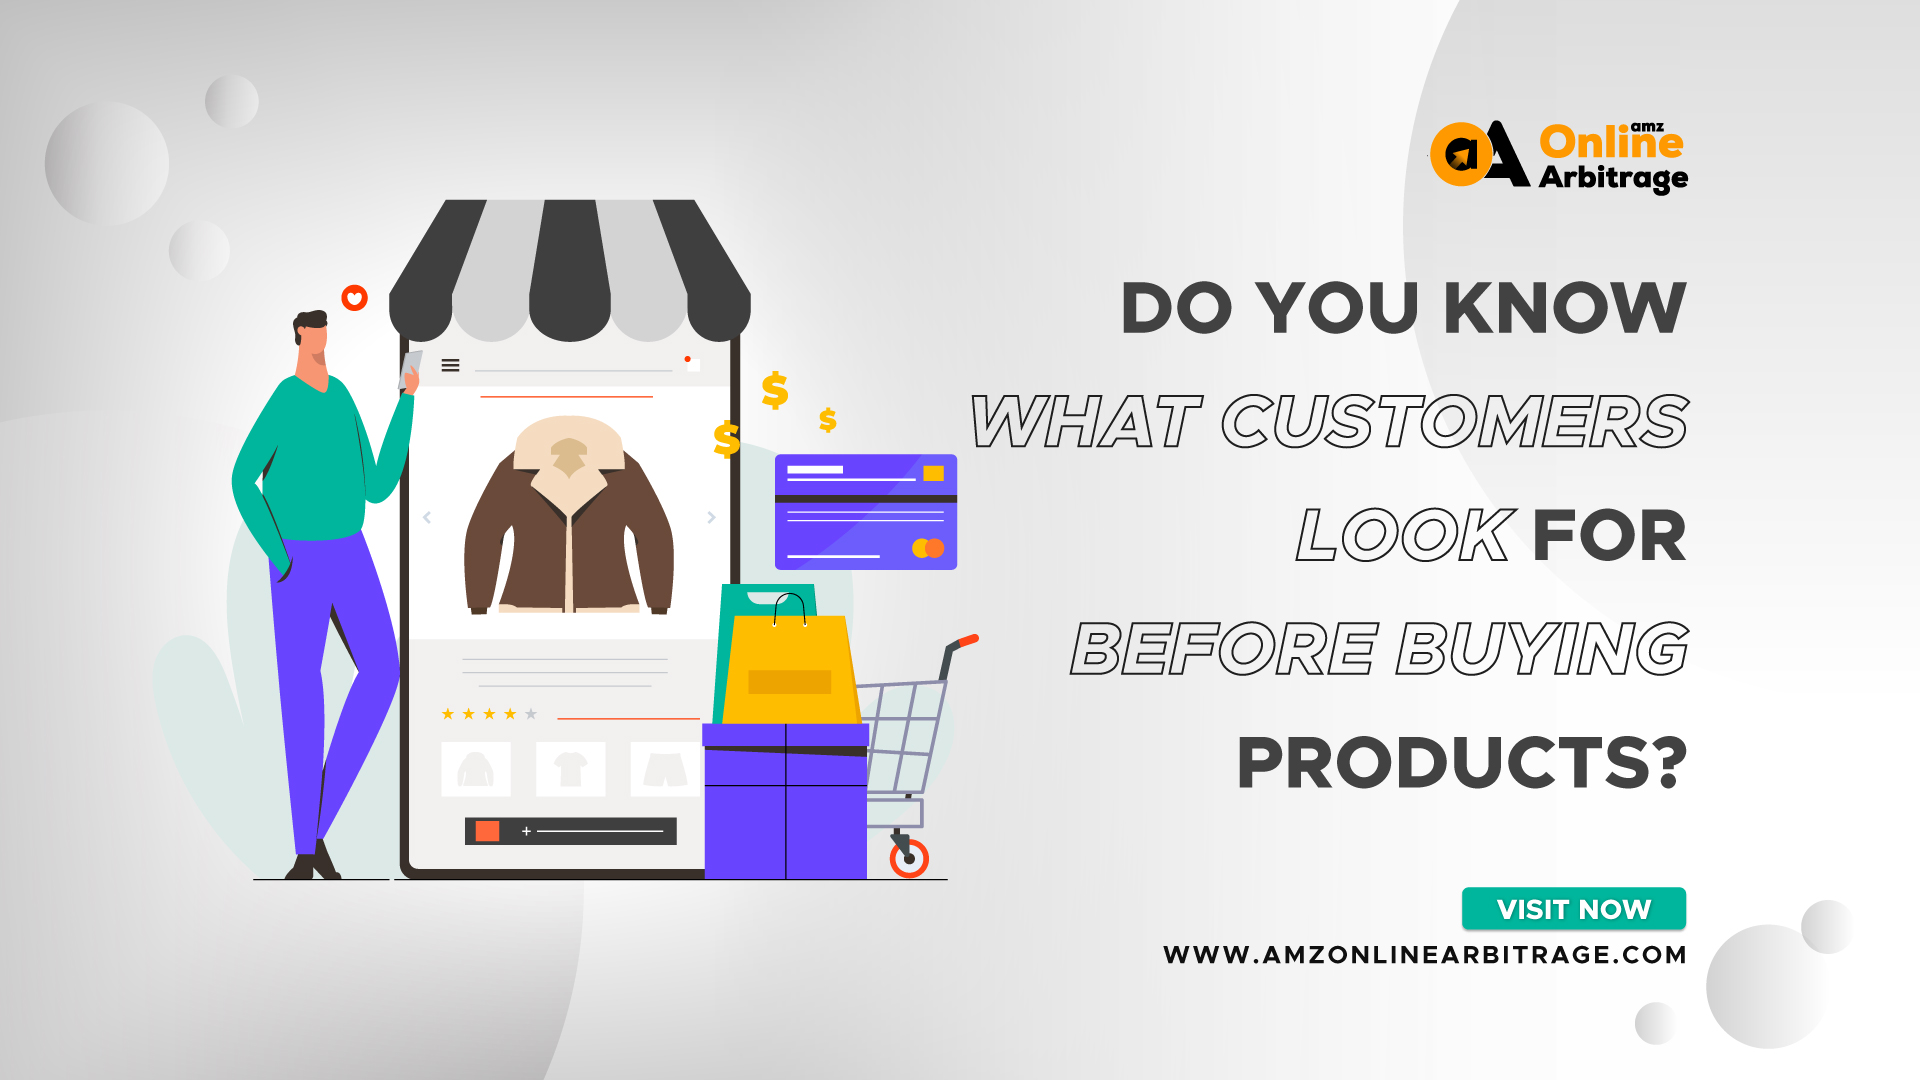 WHAT CUSTOMERS LOOK FOR BEFORE BUYING PRODUCTS?